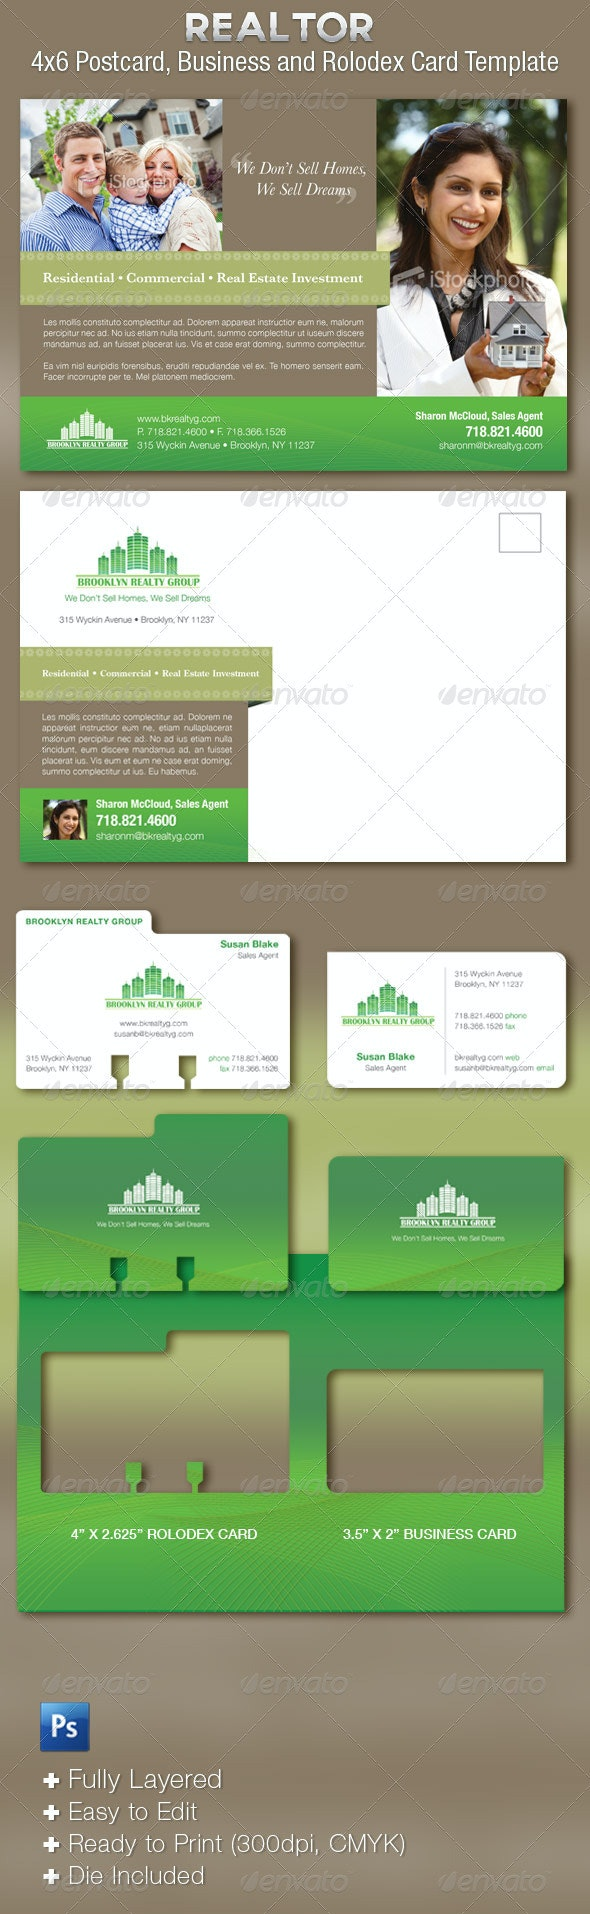 Real Estate Flyer Plus Business Cards Template - Miscellaneous Print Templates